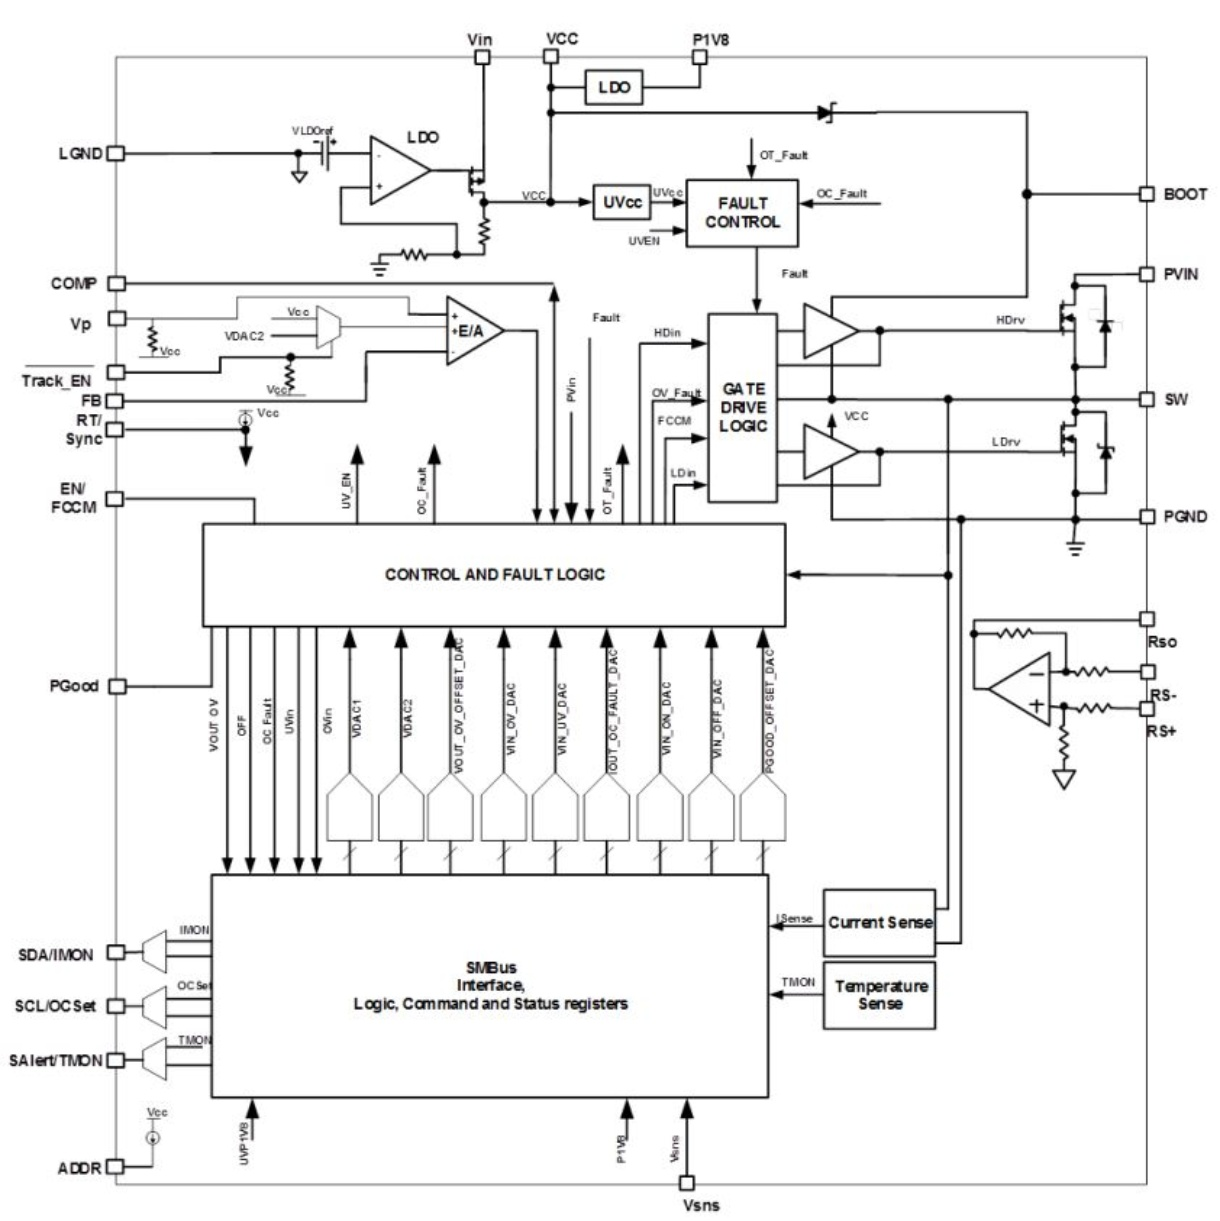 Ir38063m Infineon Technologies 1450 Microwave Oven Schematic Image Touch Control Panel Circuit Prevnext